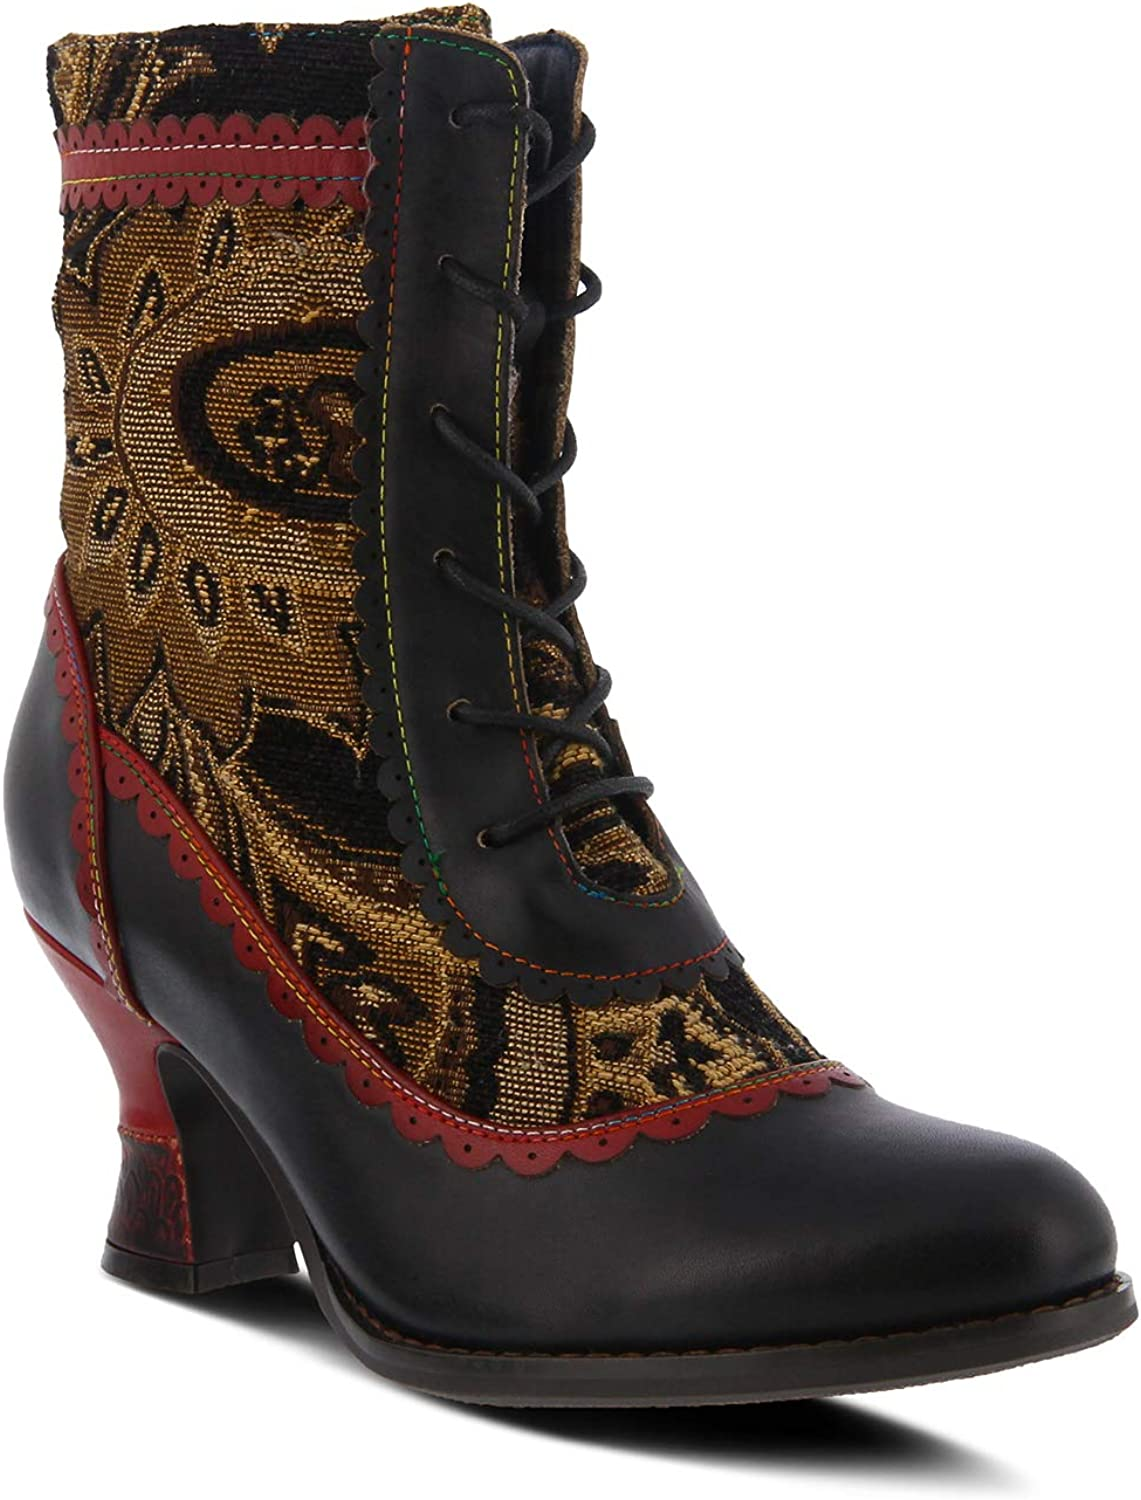 L`Artiste by Spring Step Women's Leather Boots Bewitch